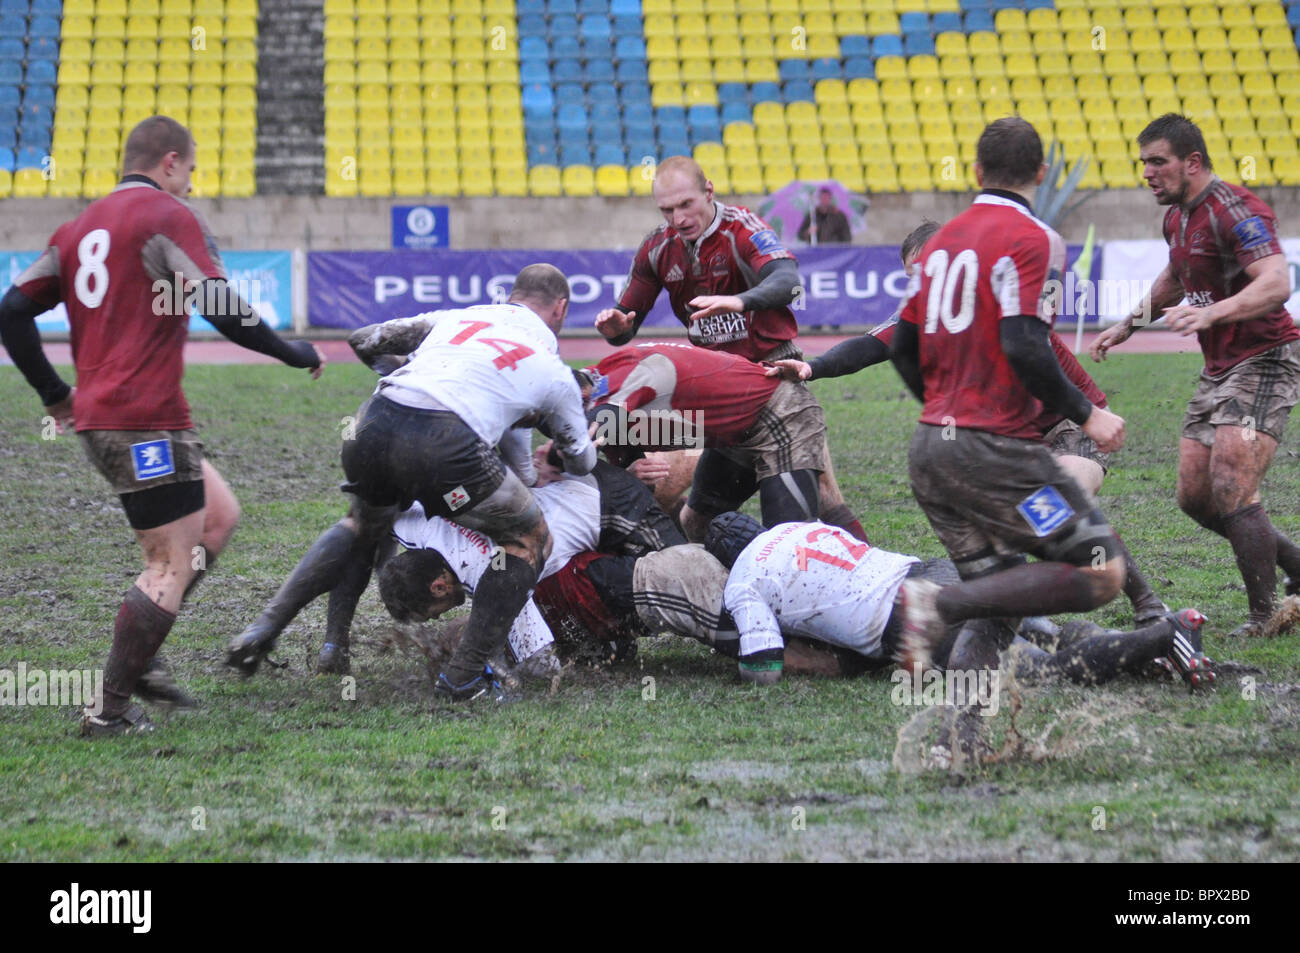 Partido de rugby European Nations Cup: Rusia 14 - 10 Portugal Imagen De Stock